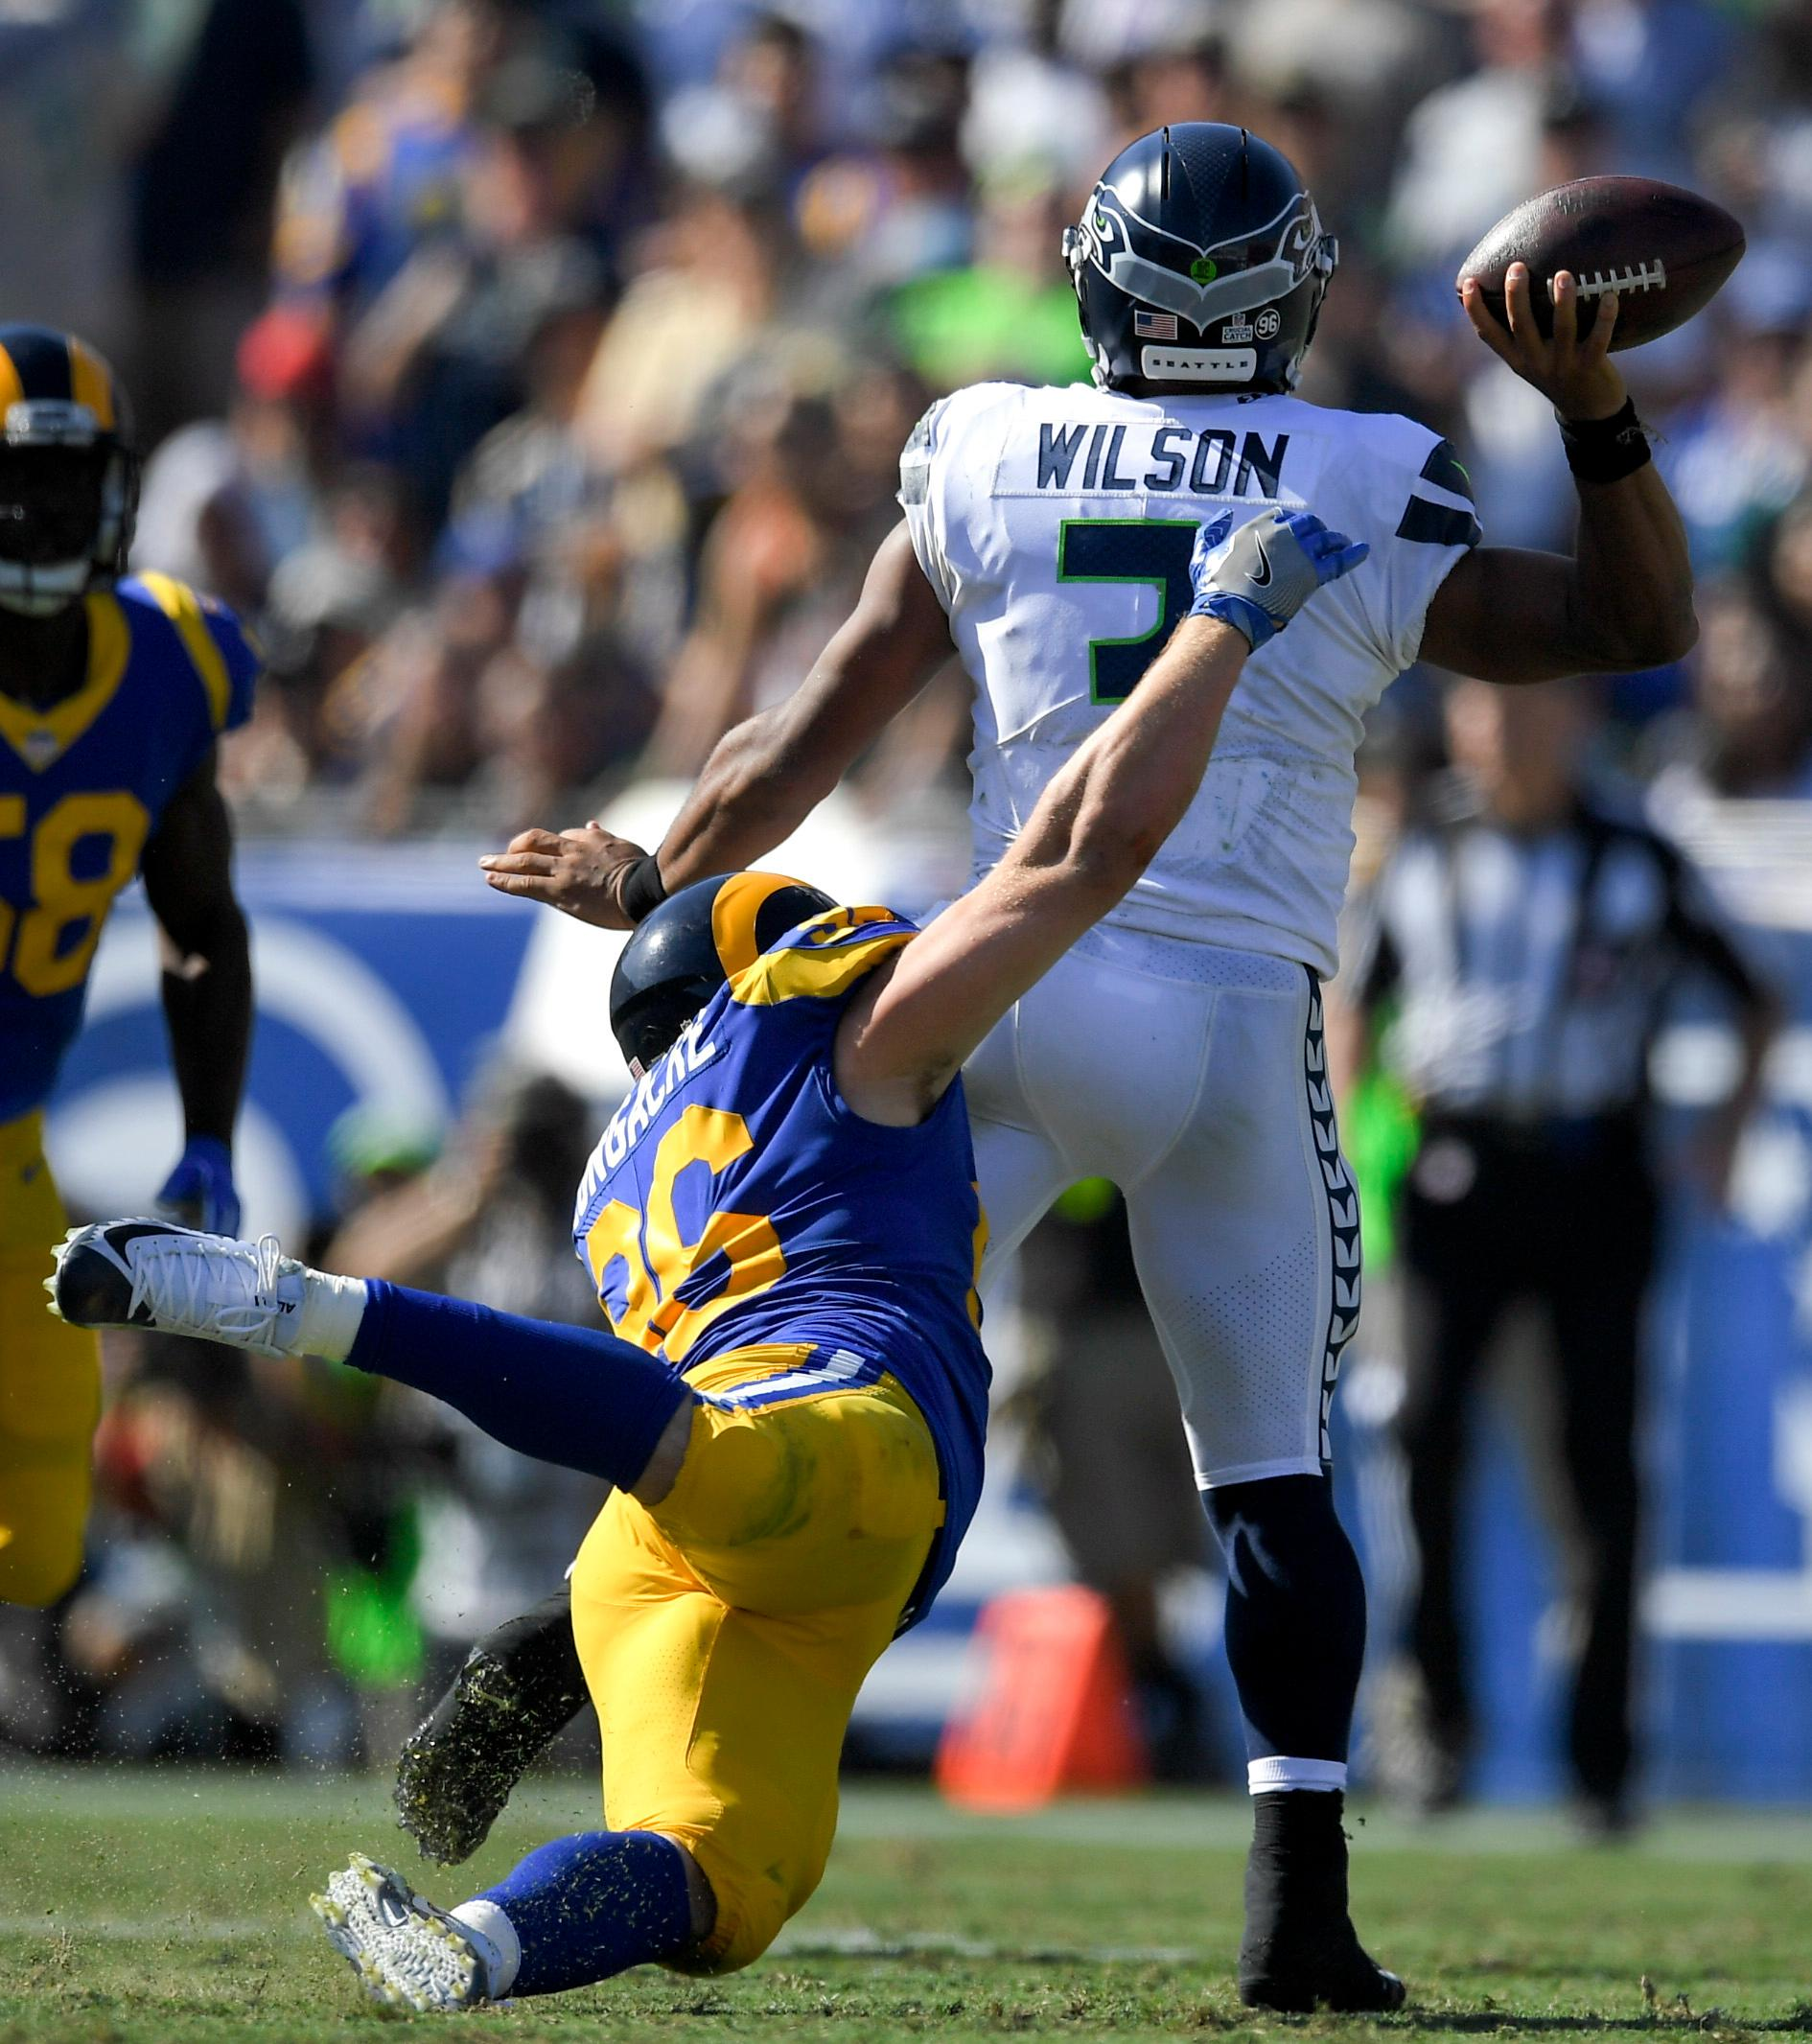 Seattle Seahawks quarterback Russell Wilson gets a pass off under pressure from Los Angeles Rams linebacker Matt Longacre during the second half of an NFL football game Sunday, Oct. 8, 2017, in Los Angeles. (AP Photo/Mark J. Terrill)